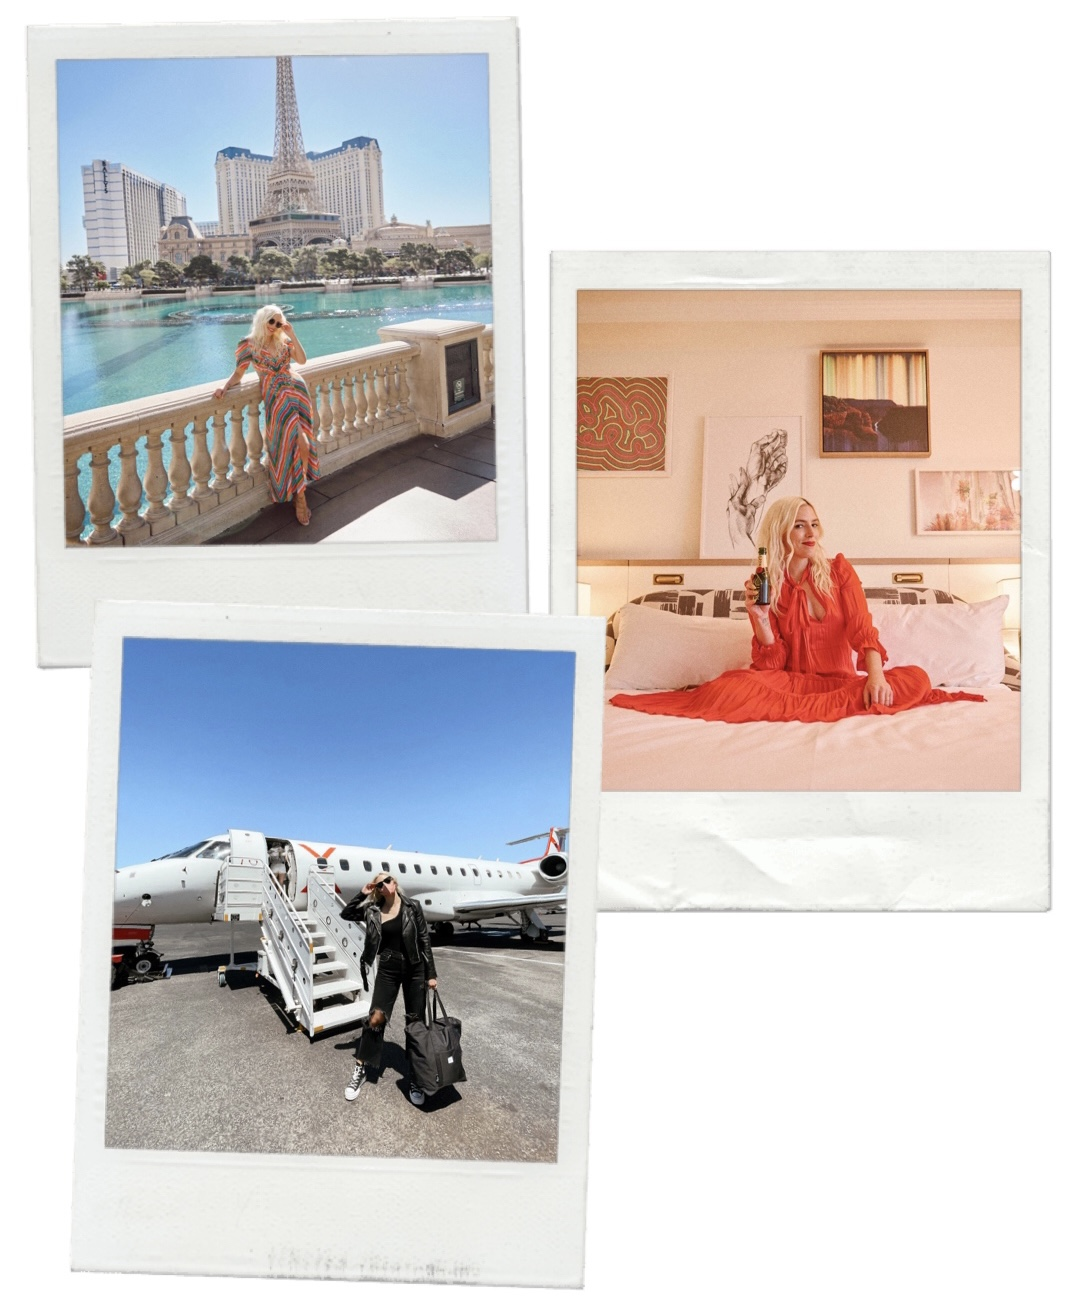 collage of images of woman in las vegas, bedroom, and boarding a airplane for travel guide to las vegas